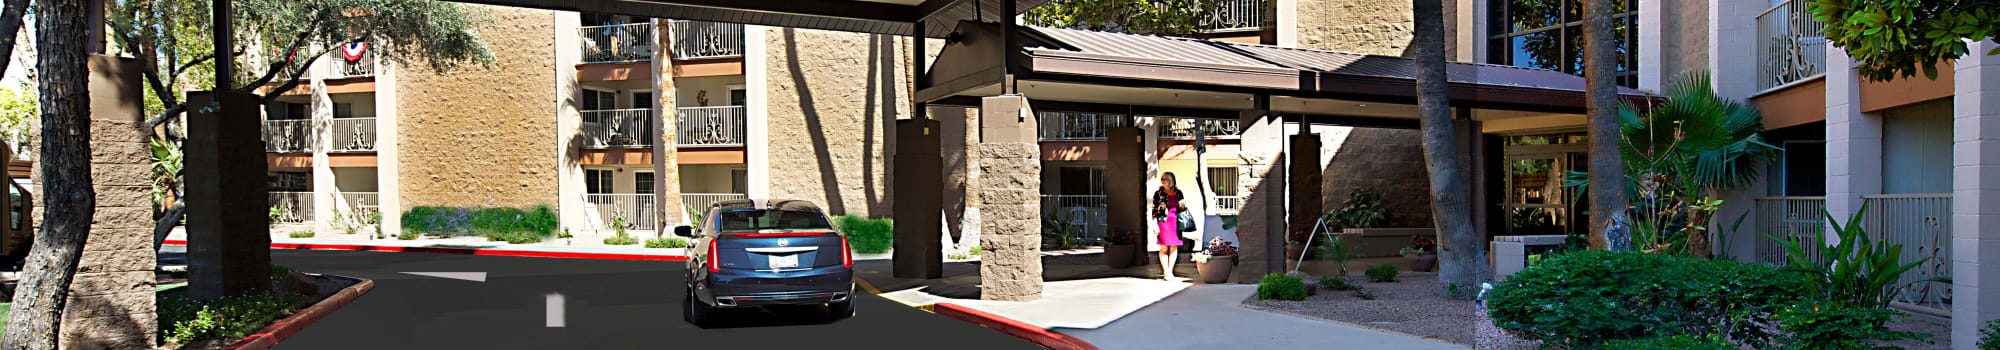 Floor Plans at Bella Vista Senior Living in Mesa, Arizona